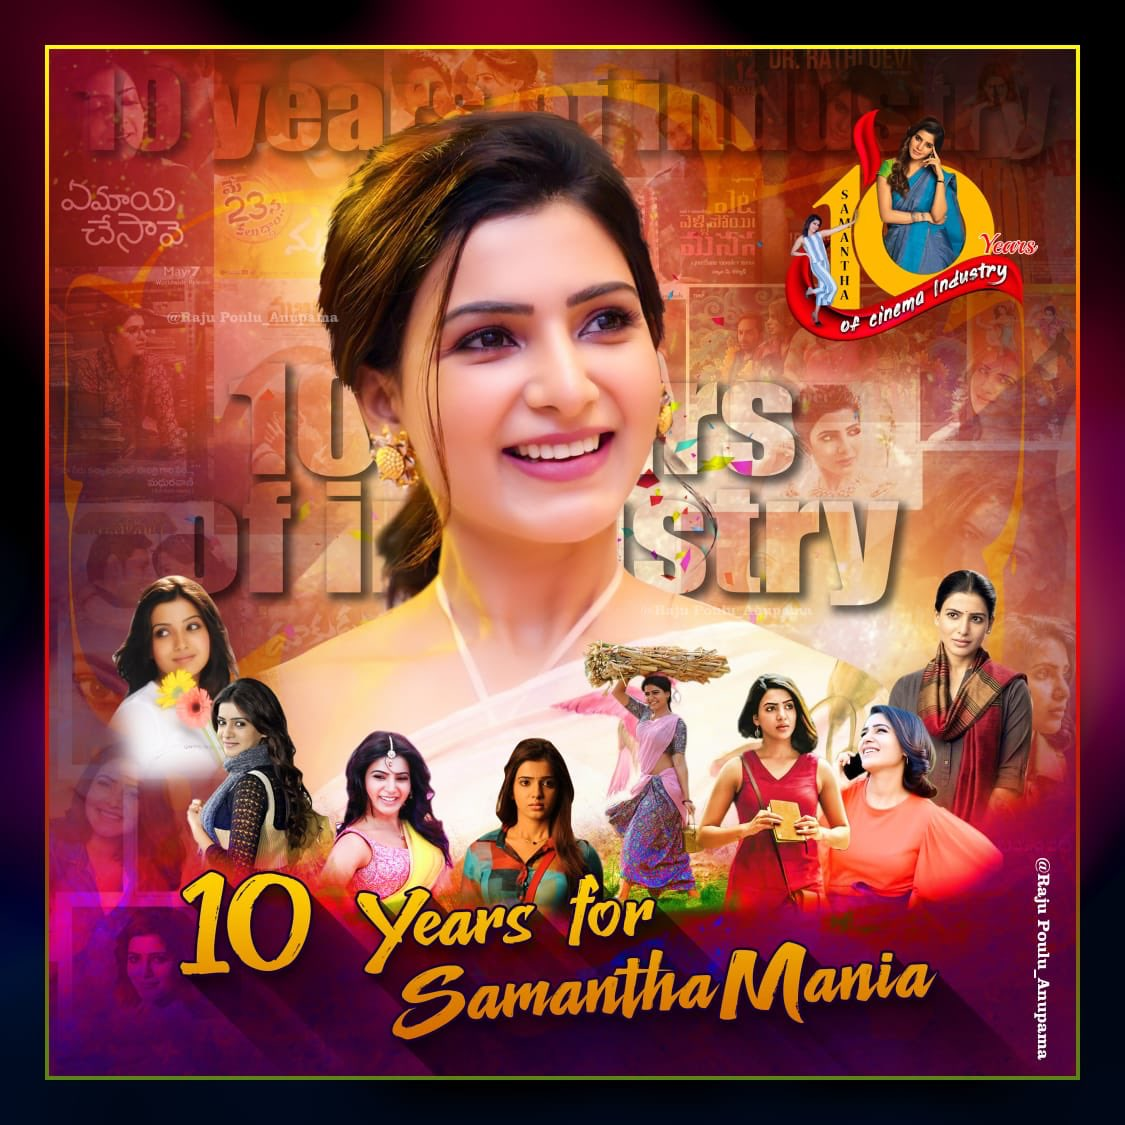 Super happy to launch #10YearsForSamanthaMania ❤️❤️ @Samanthaprabhu2 is one one the nicest and most talented actors I have seen and there is soooo much I look upto her for .. lots of love Sam and here is to many more years 😀😀